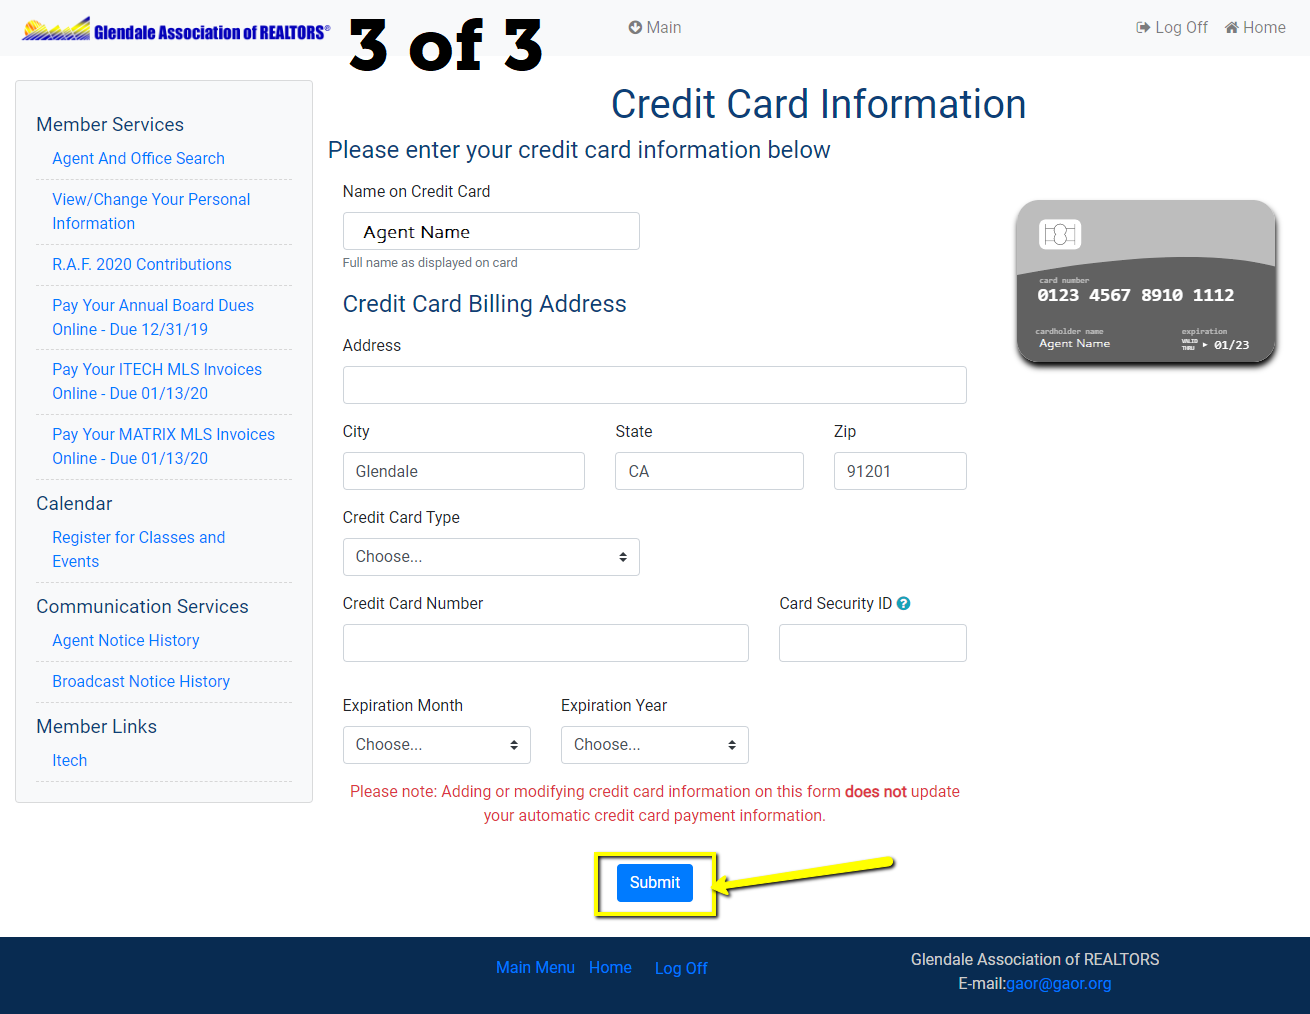 Supply Credit Card Information